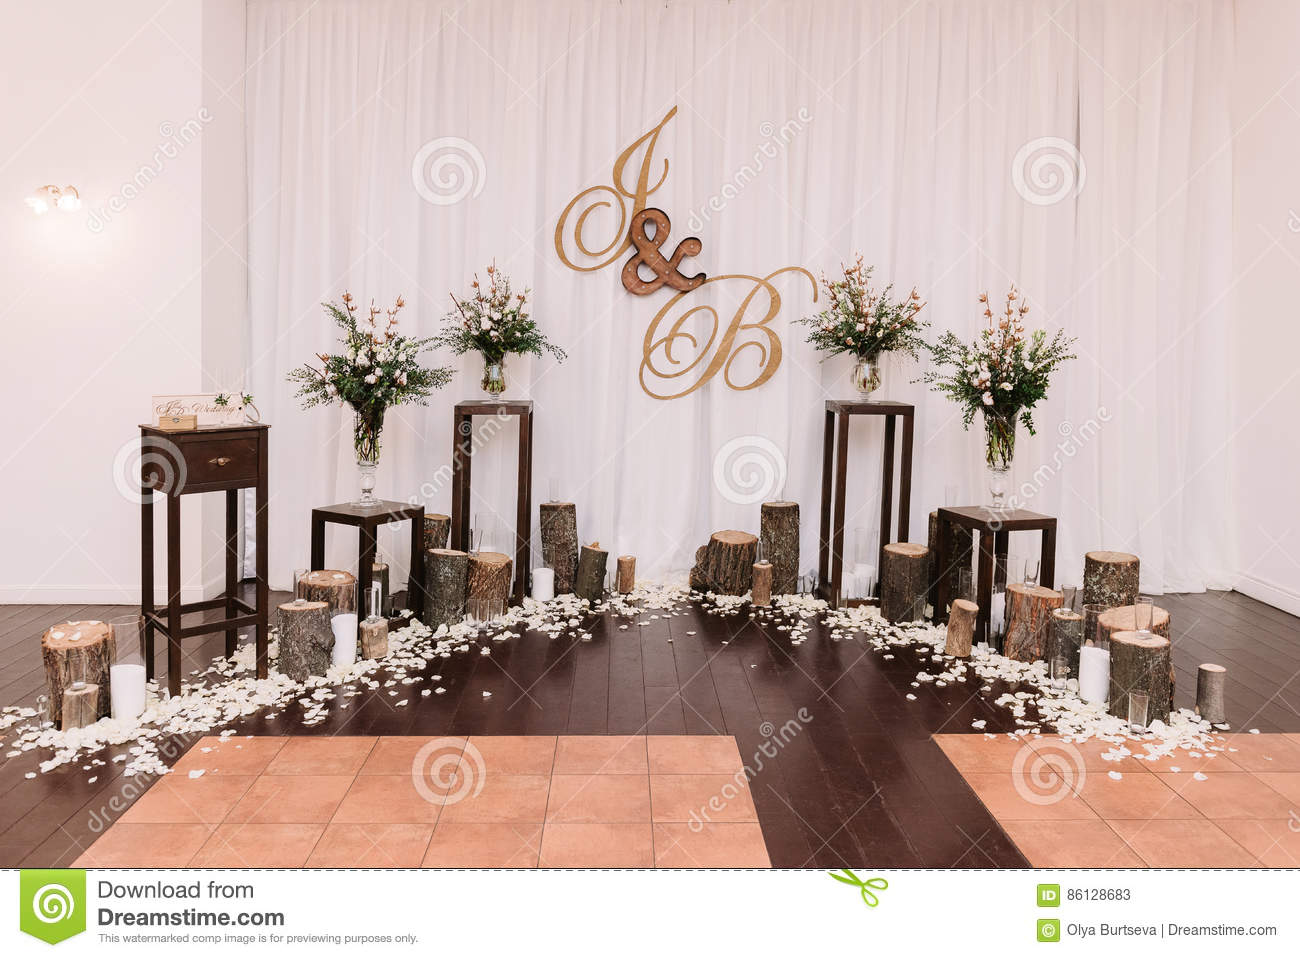 Wedding Decorations Resale Image Collections Wedding Decoration Resell Wedding  Decor Gallery Wedding Decoration Ideas Beautiful Unusual